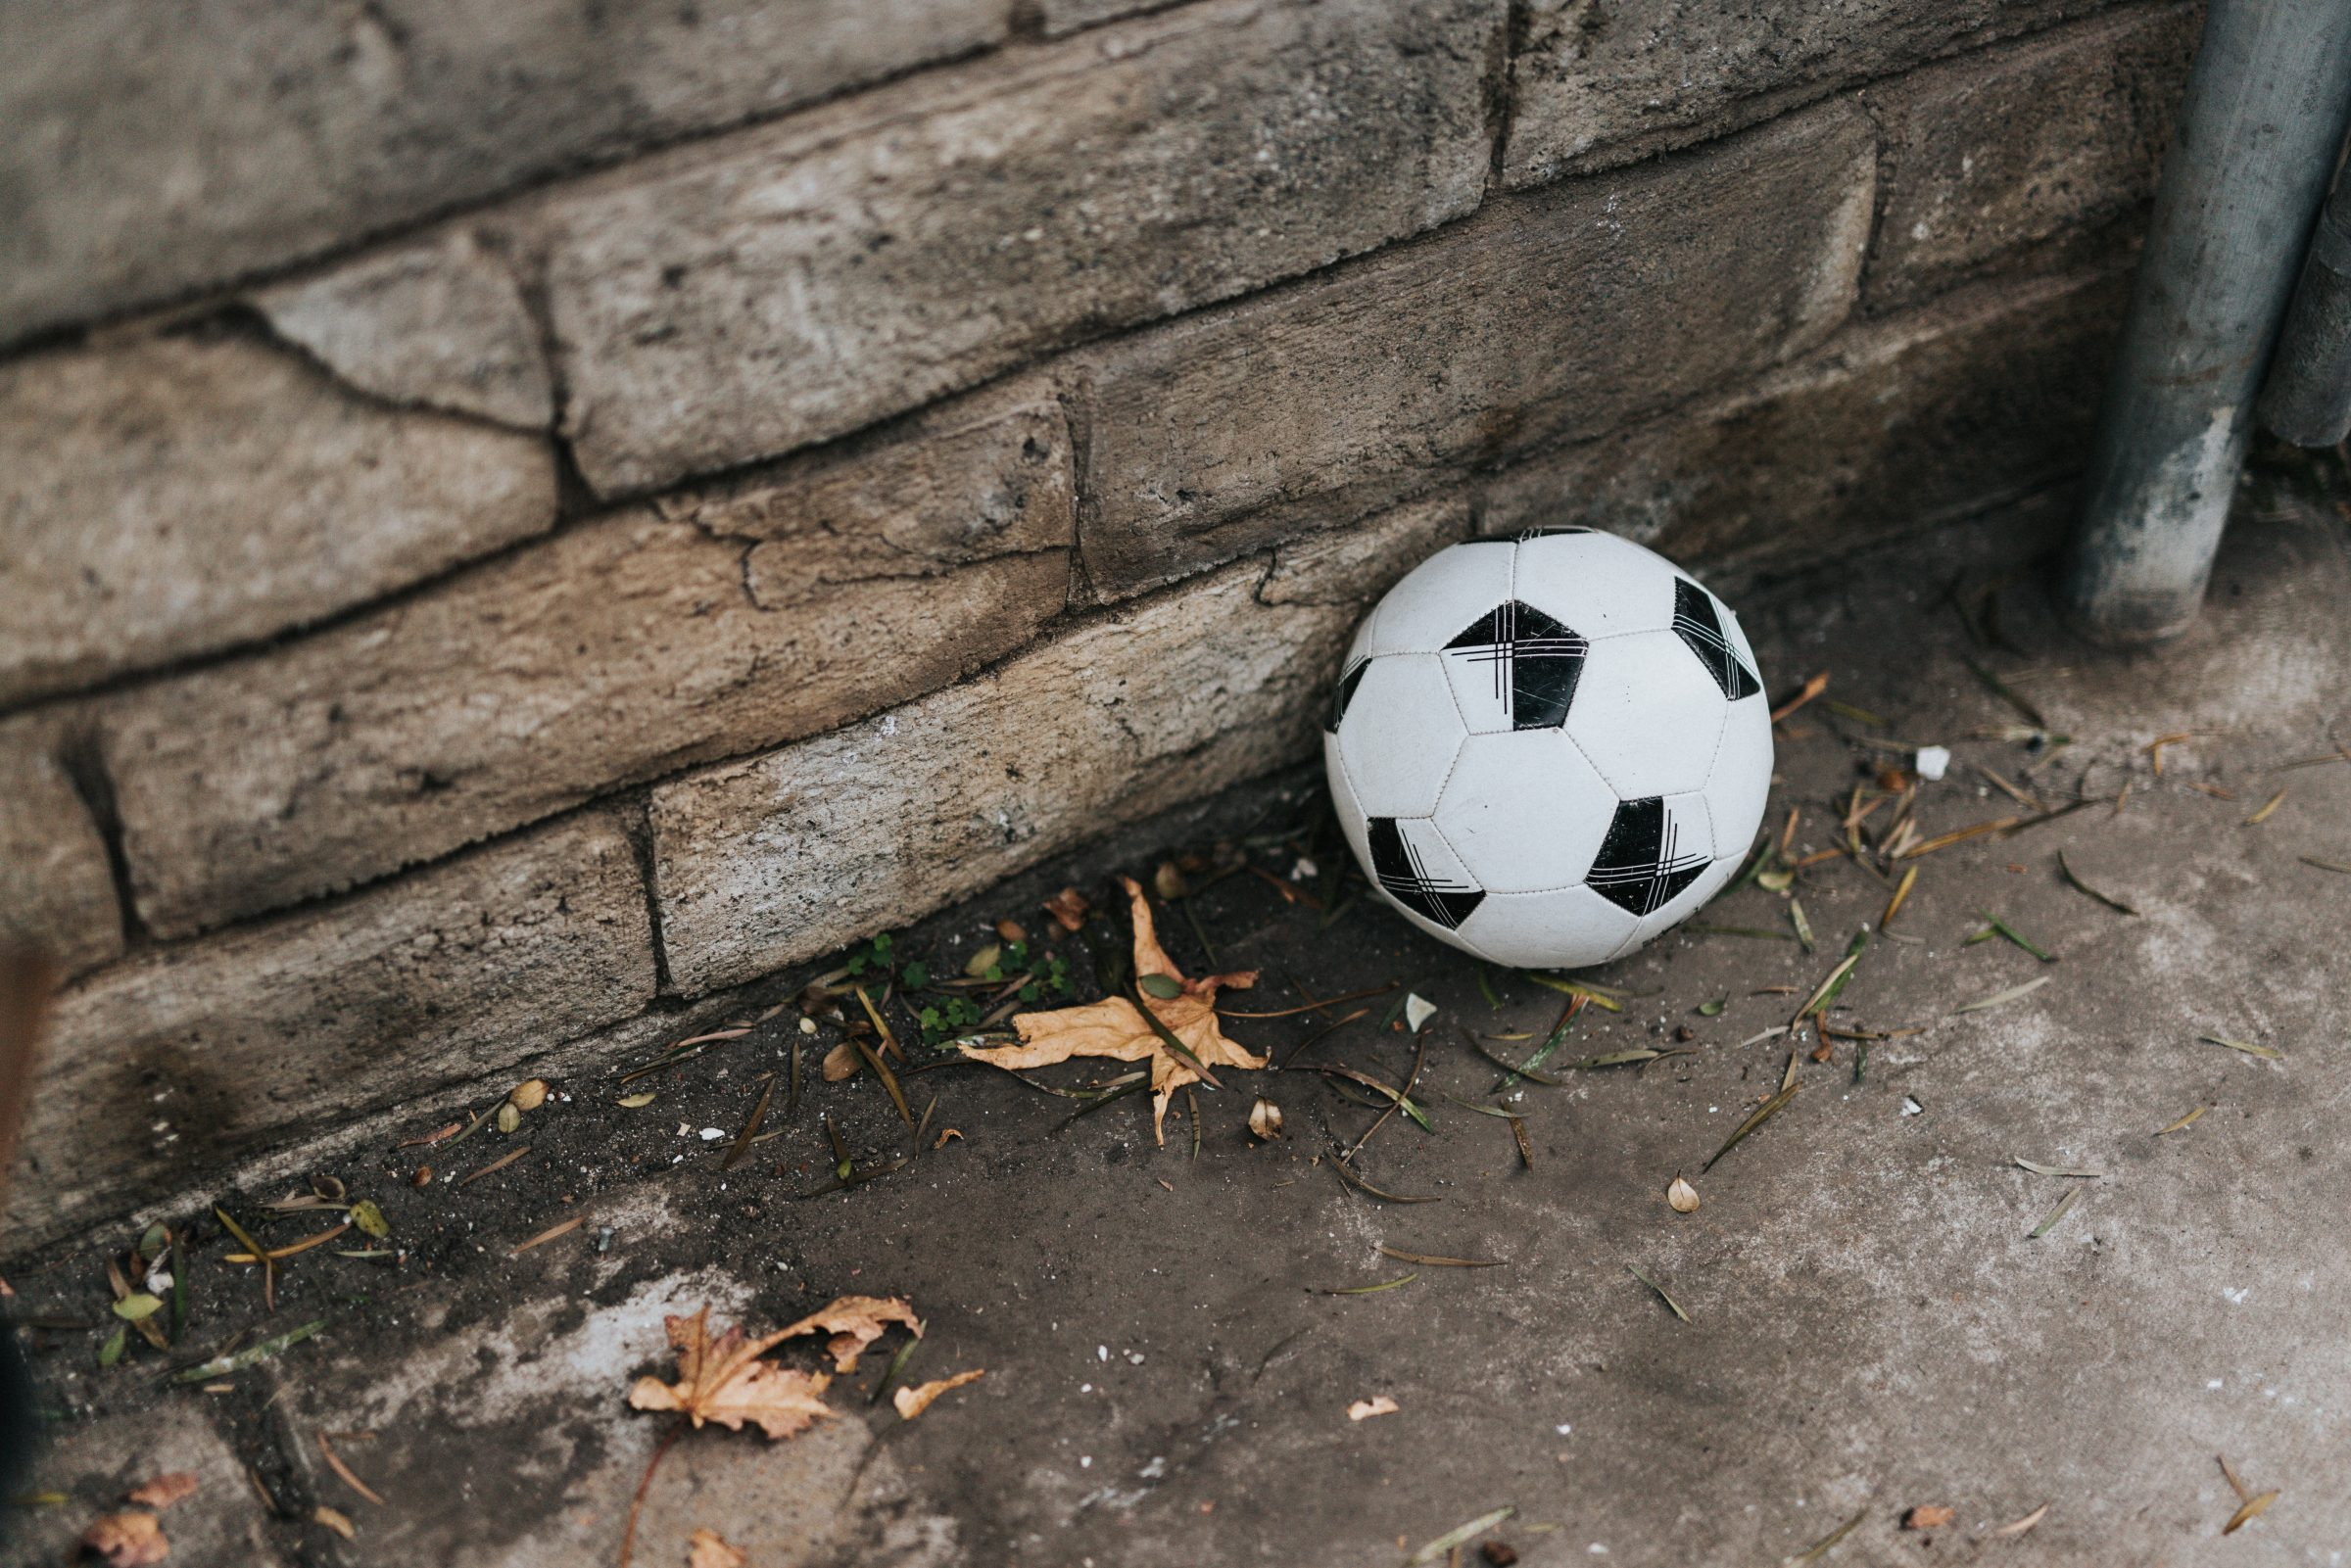 Image of a football on the ground by a wall with some leaves